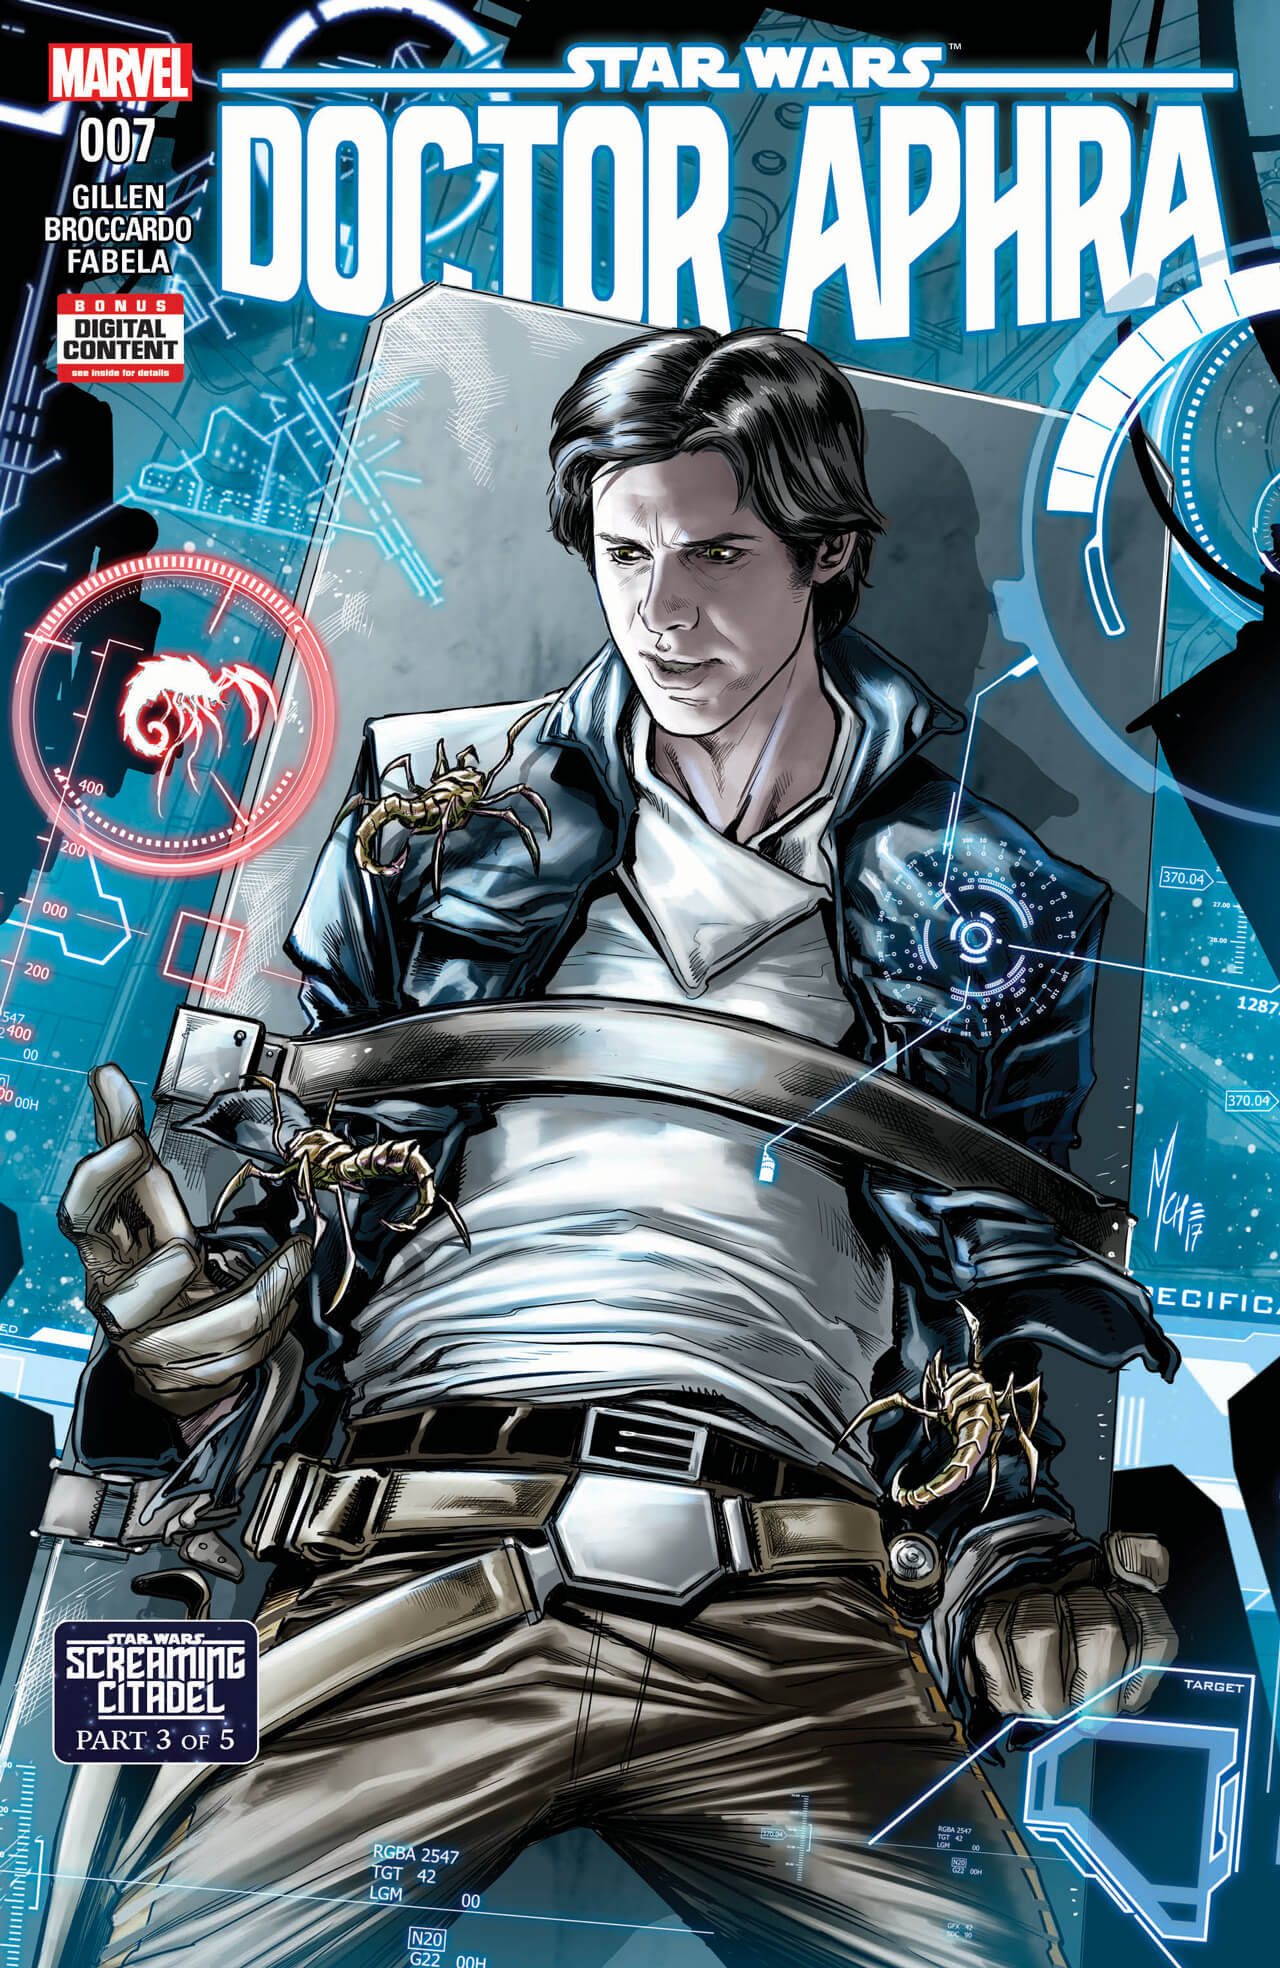 star wars screaming citadel4 1 - Star Wars: The Screaming Citadel Horror Comic Coming This Year